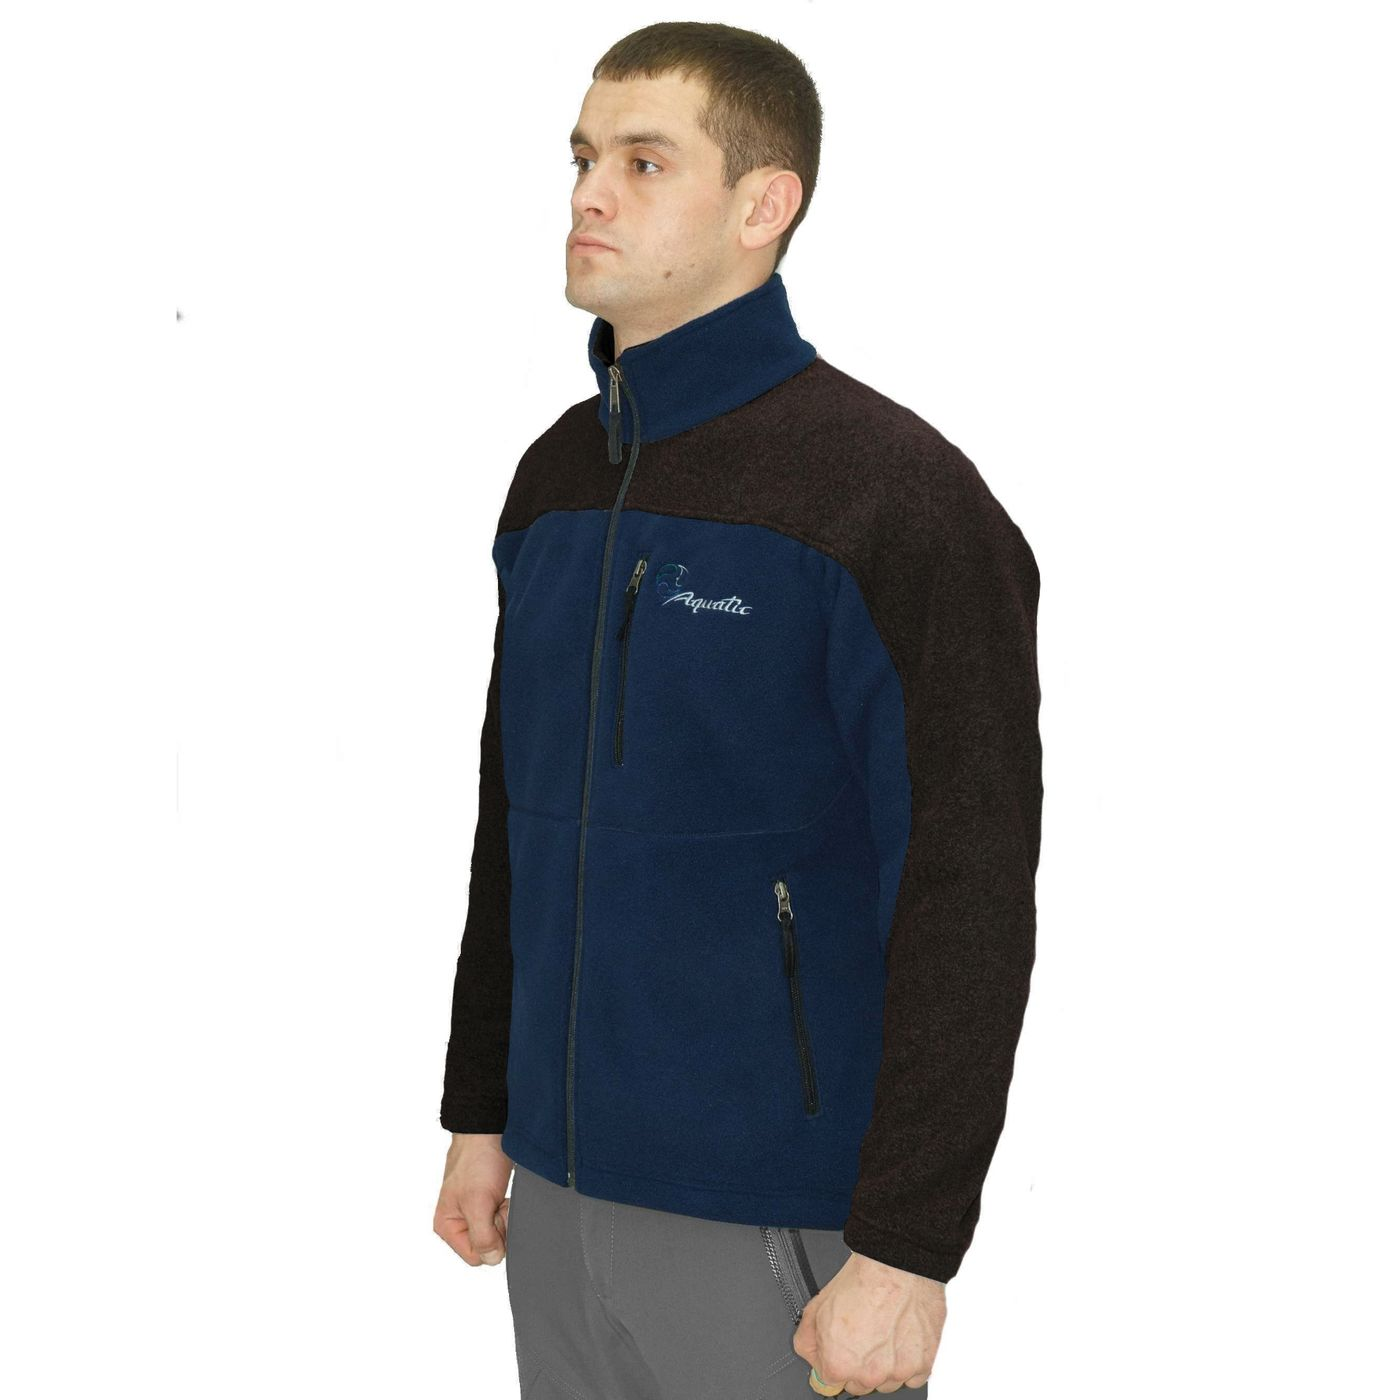 Fleece Jacket Aquatic Kf-03 Tsk Kf-03 Tsk M